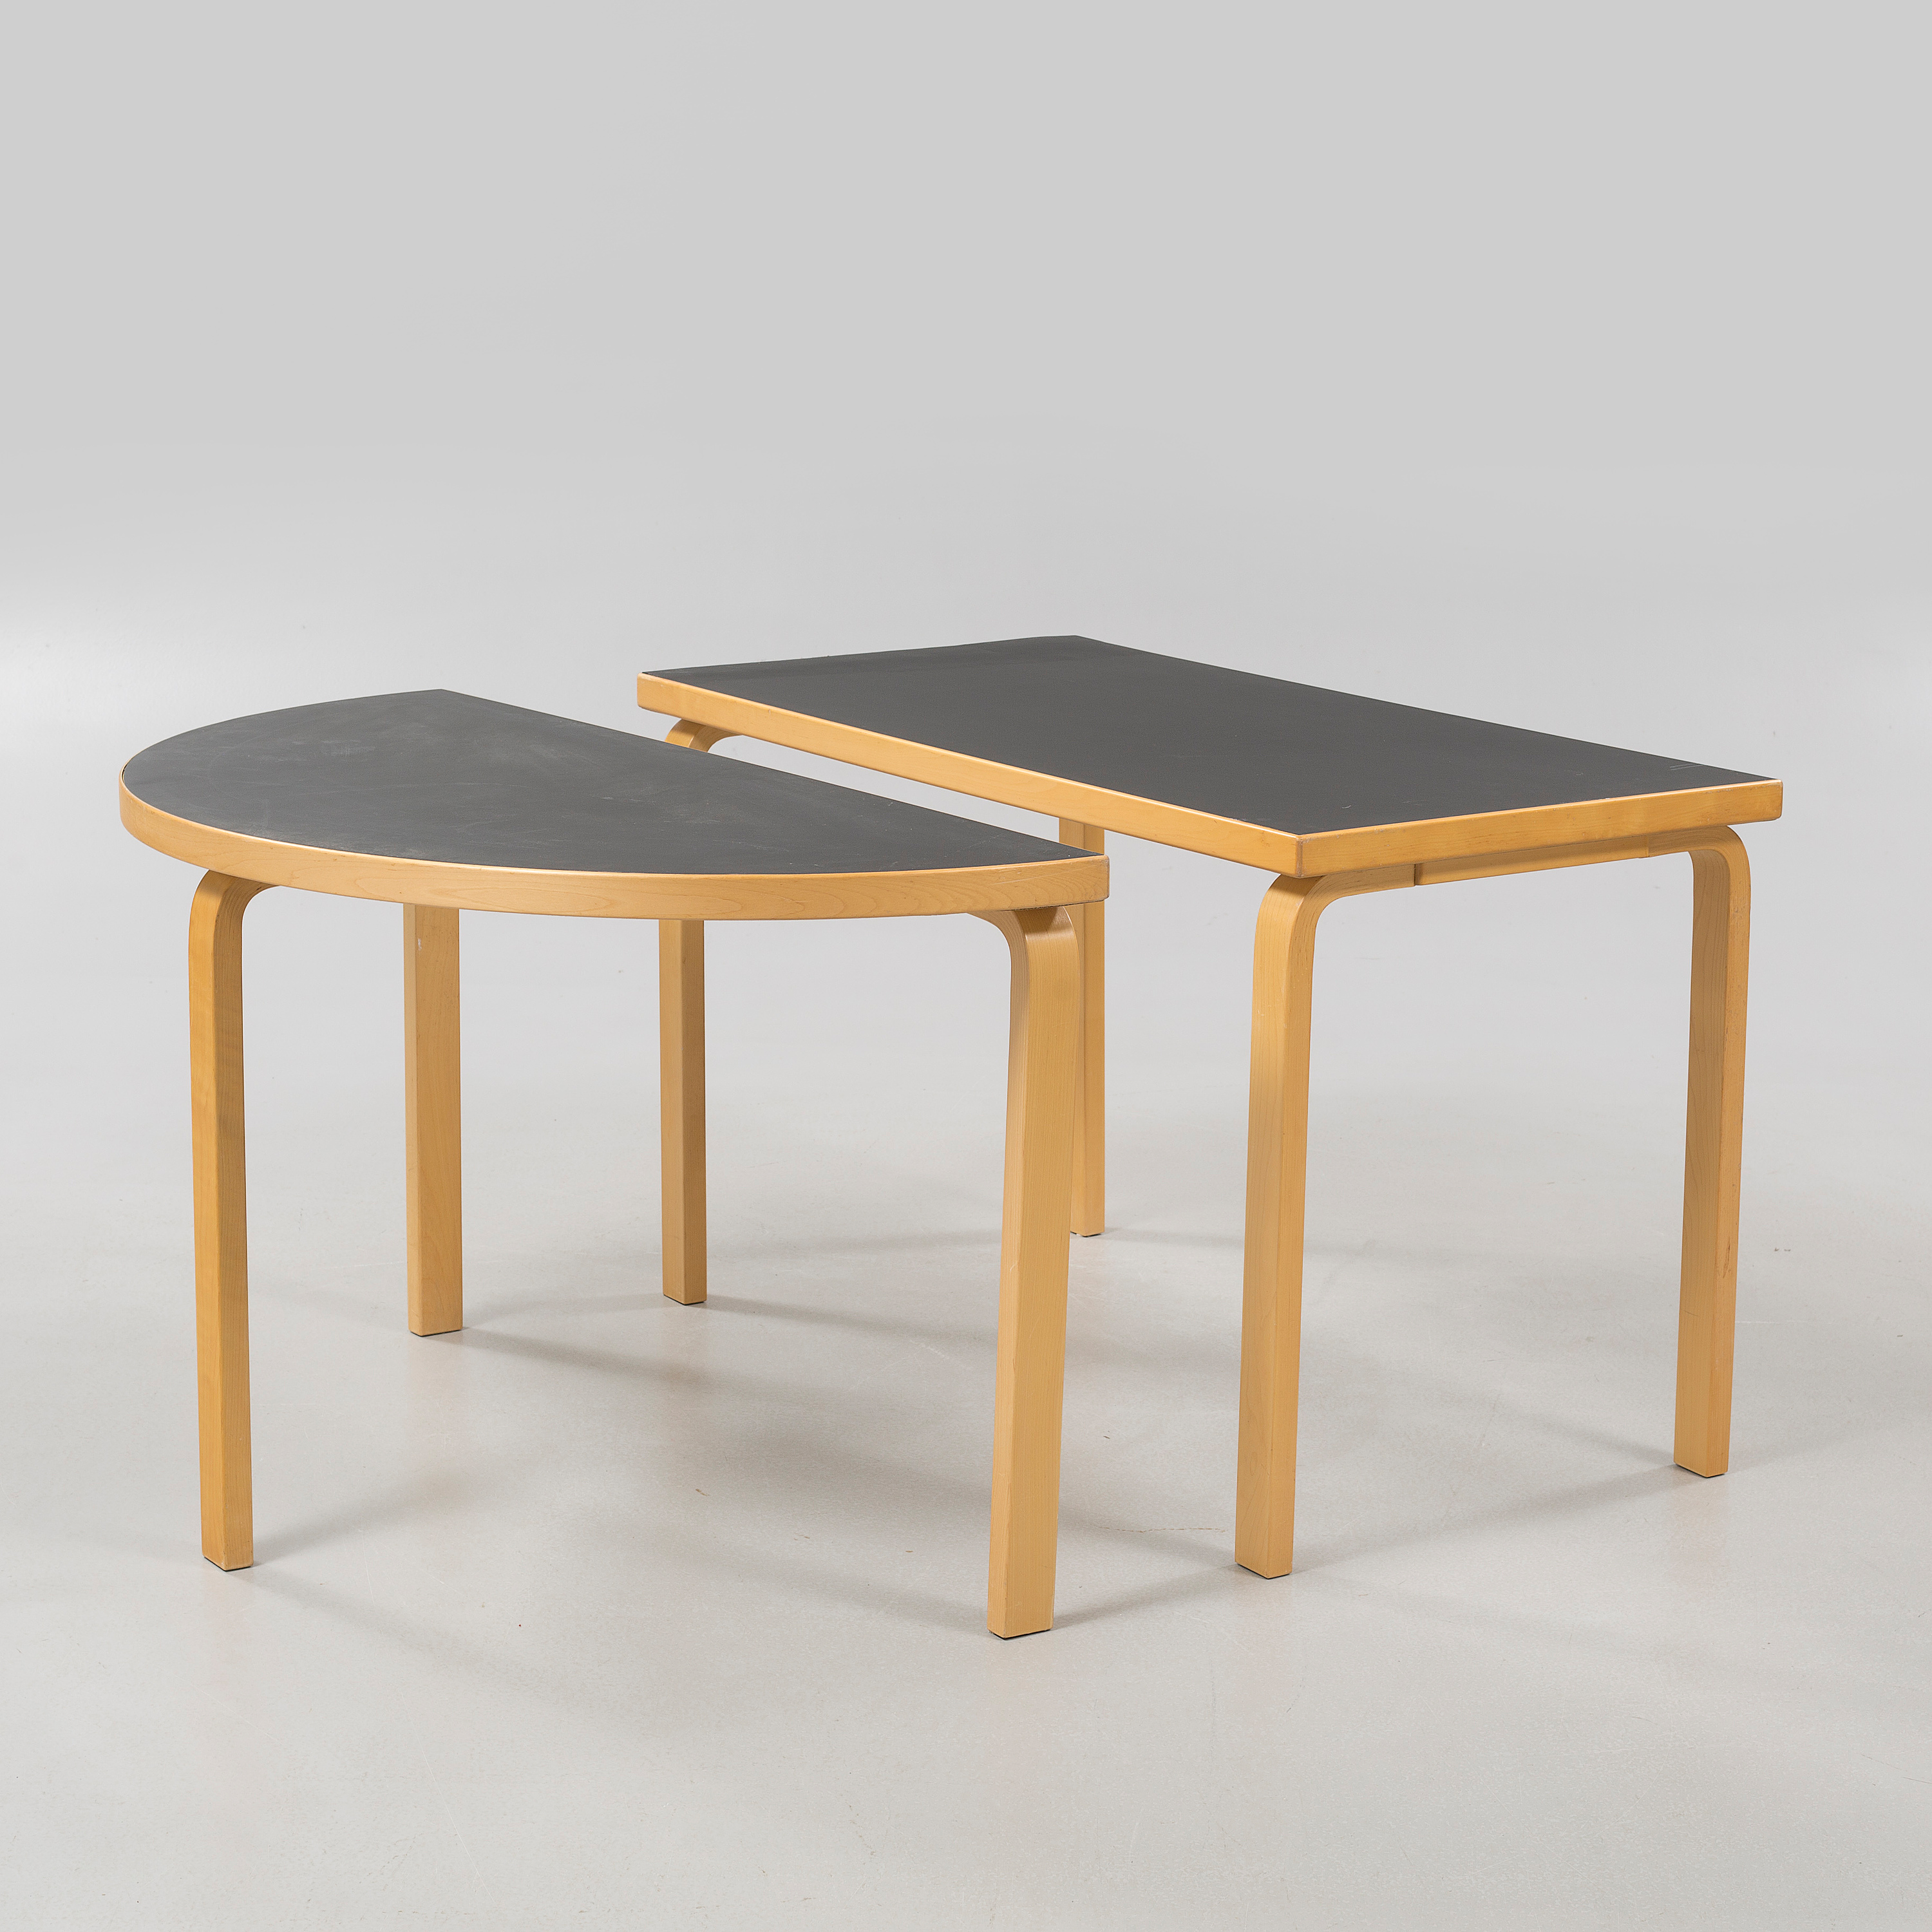 Delicieux ALVAR AALTO, Two ALVAR AALTO Tables For Artek, Second Half Of The 20th  Century.   Bukowskis